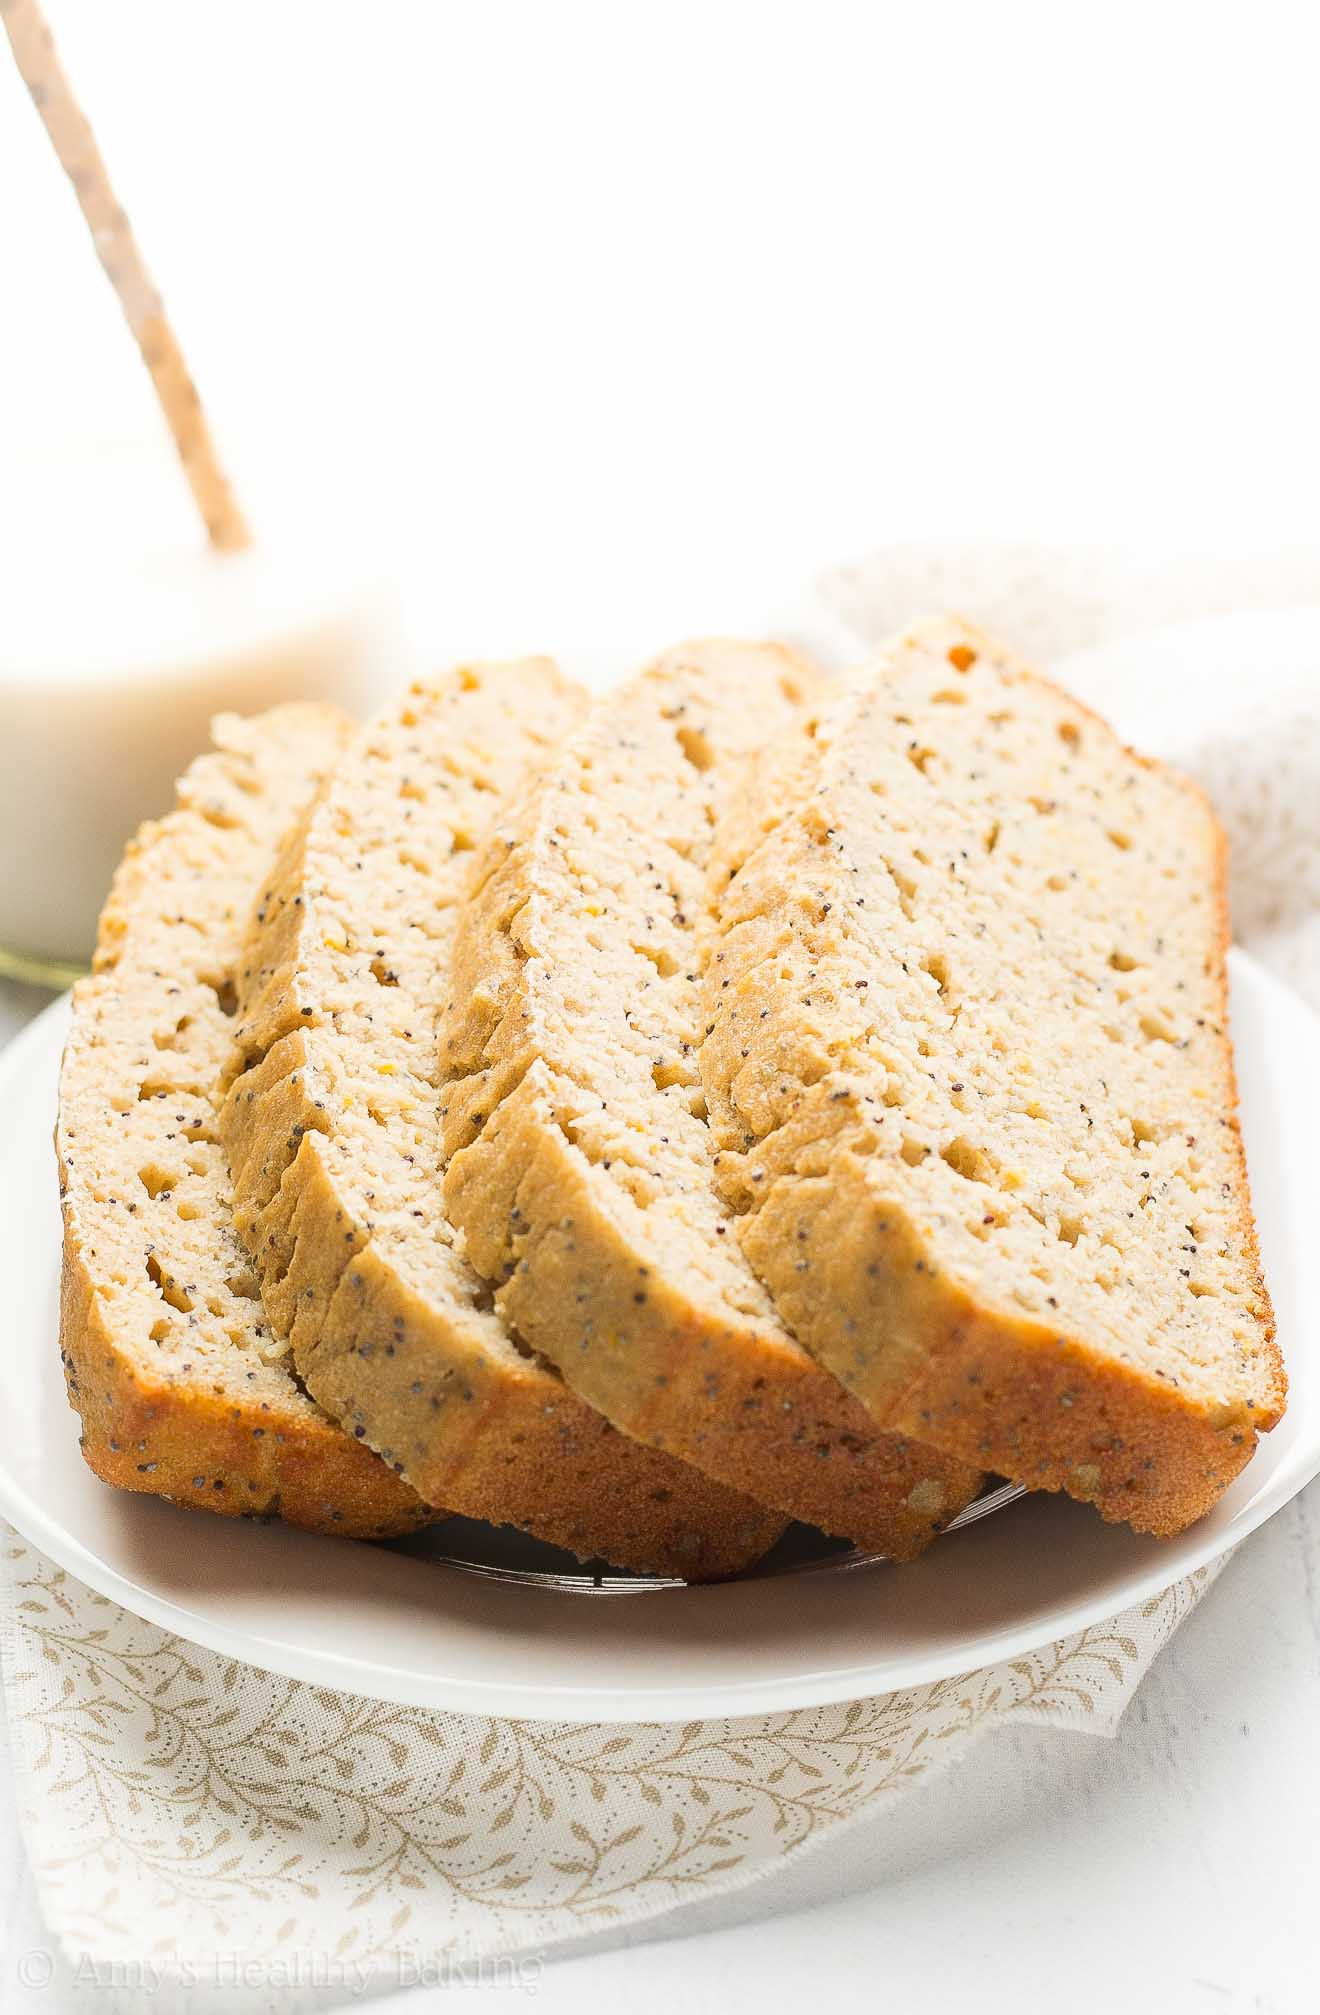 How Many Calories In Lemon Pound Cake